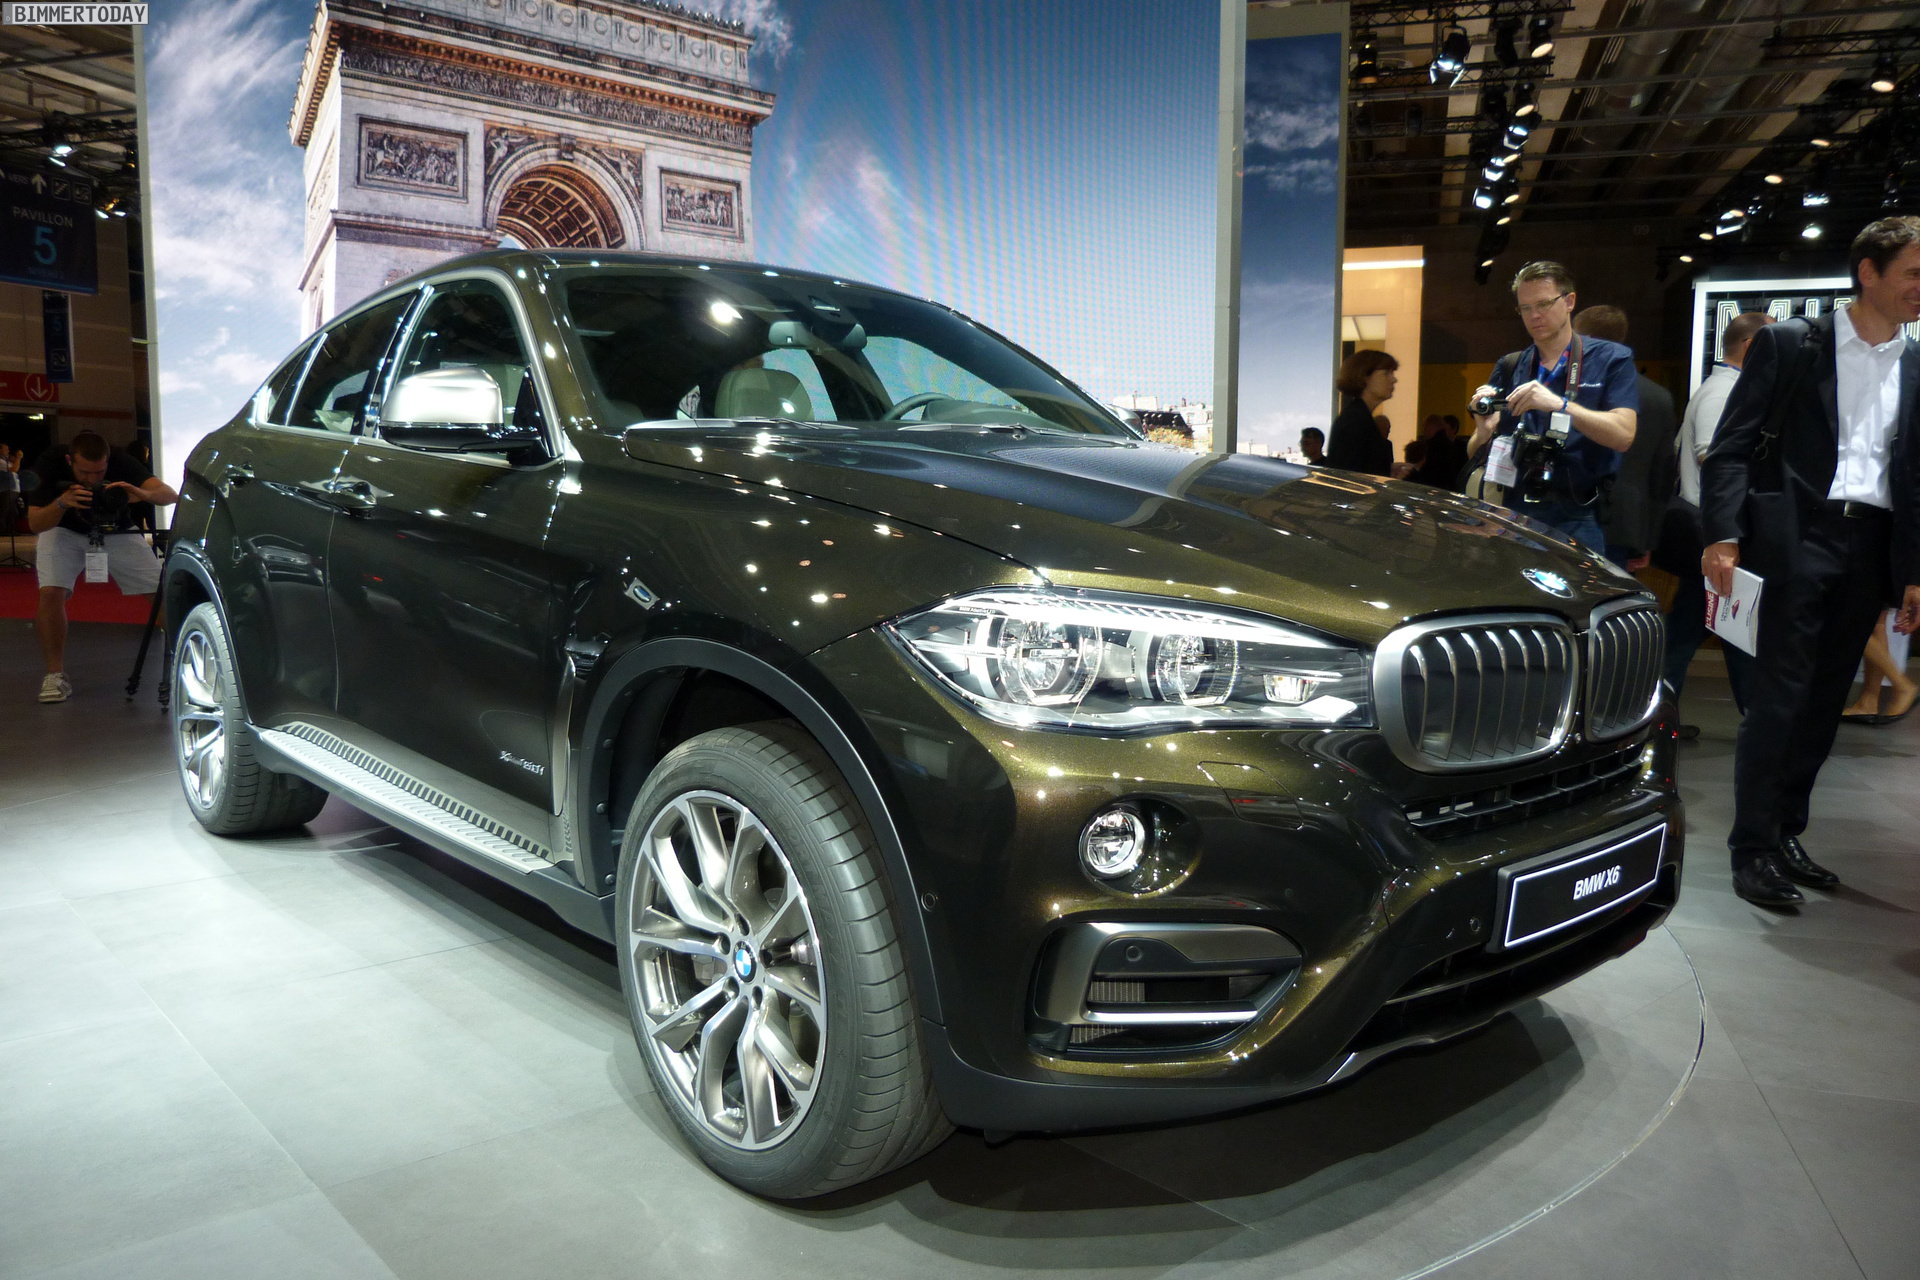 2014 Paris Motor Show: The New BMW X6